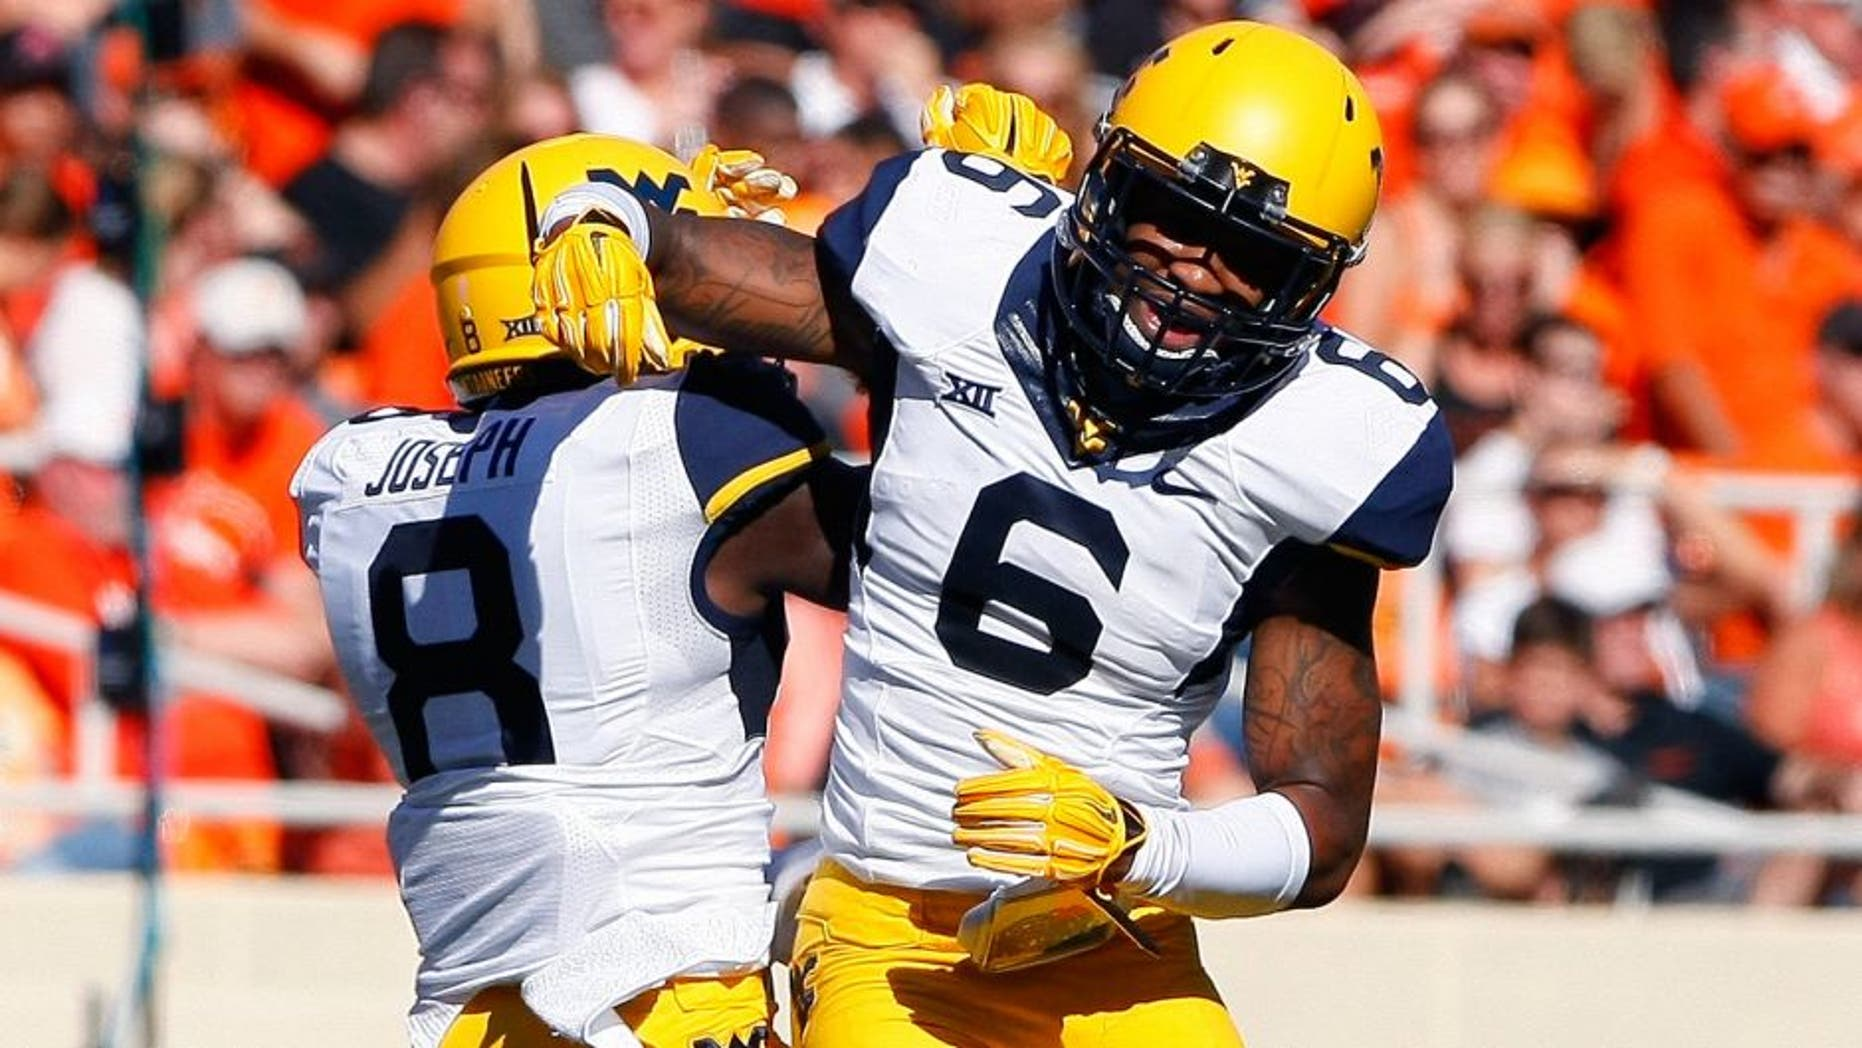 Oct 25, 2014; Stillwater, OK, USA; West Virginia Mountaineers safety Dravon Henry (6) and safety Karl Joseph (8) celebrate after Dravon Henry intercepted an Oklahoma State Cowboy pass during the first quarter at Boone Pickens Stadium. Mandatory Credit: Alonzo Adams-USA TODAY Sports